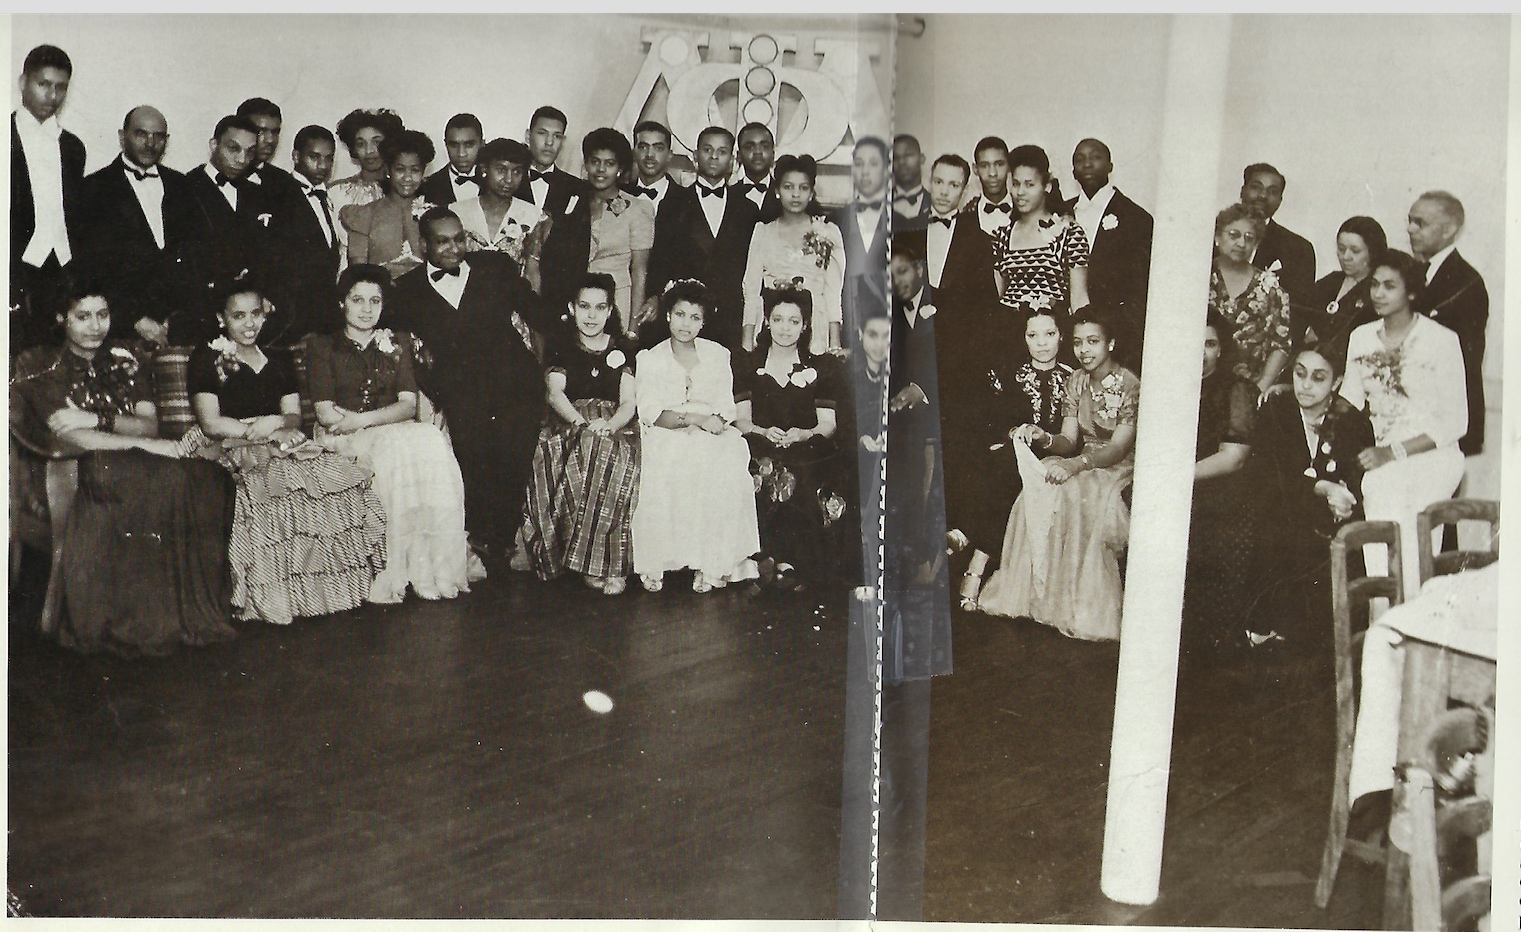 Alpha Rho fraternity dance c1942